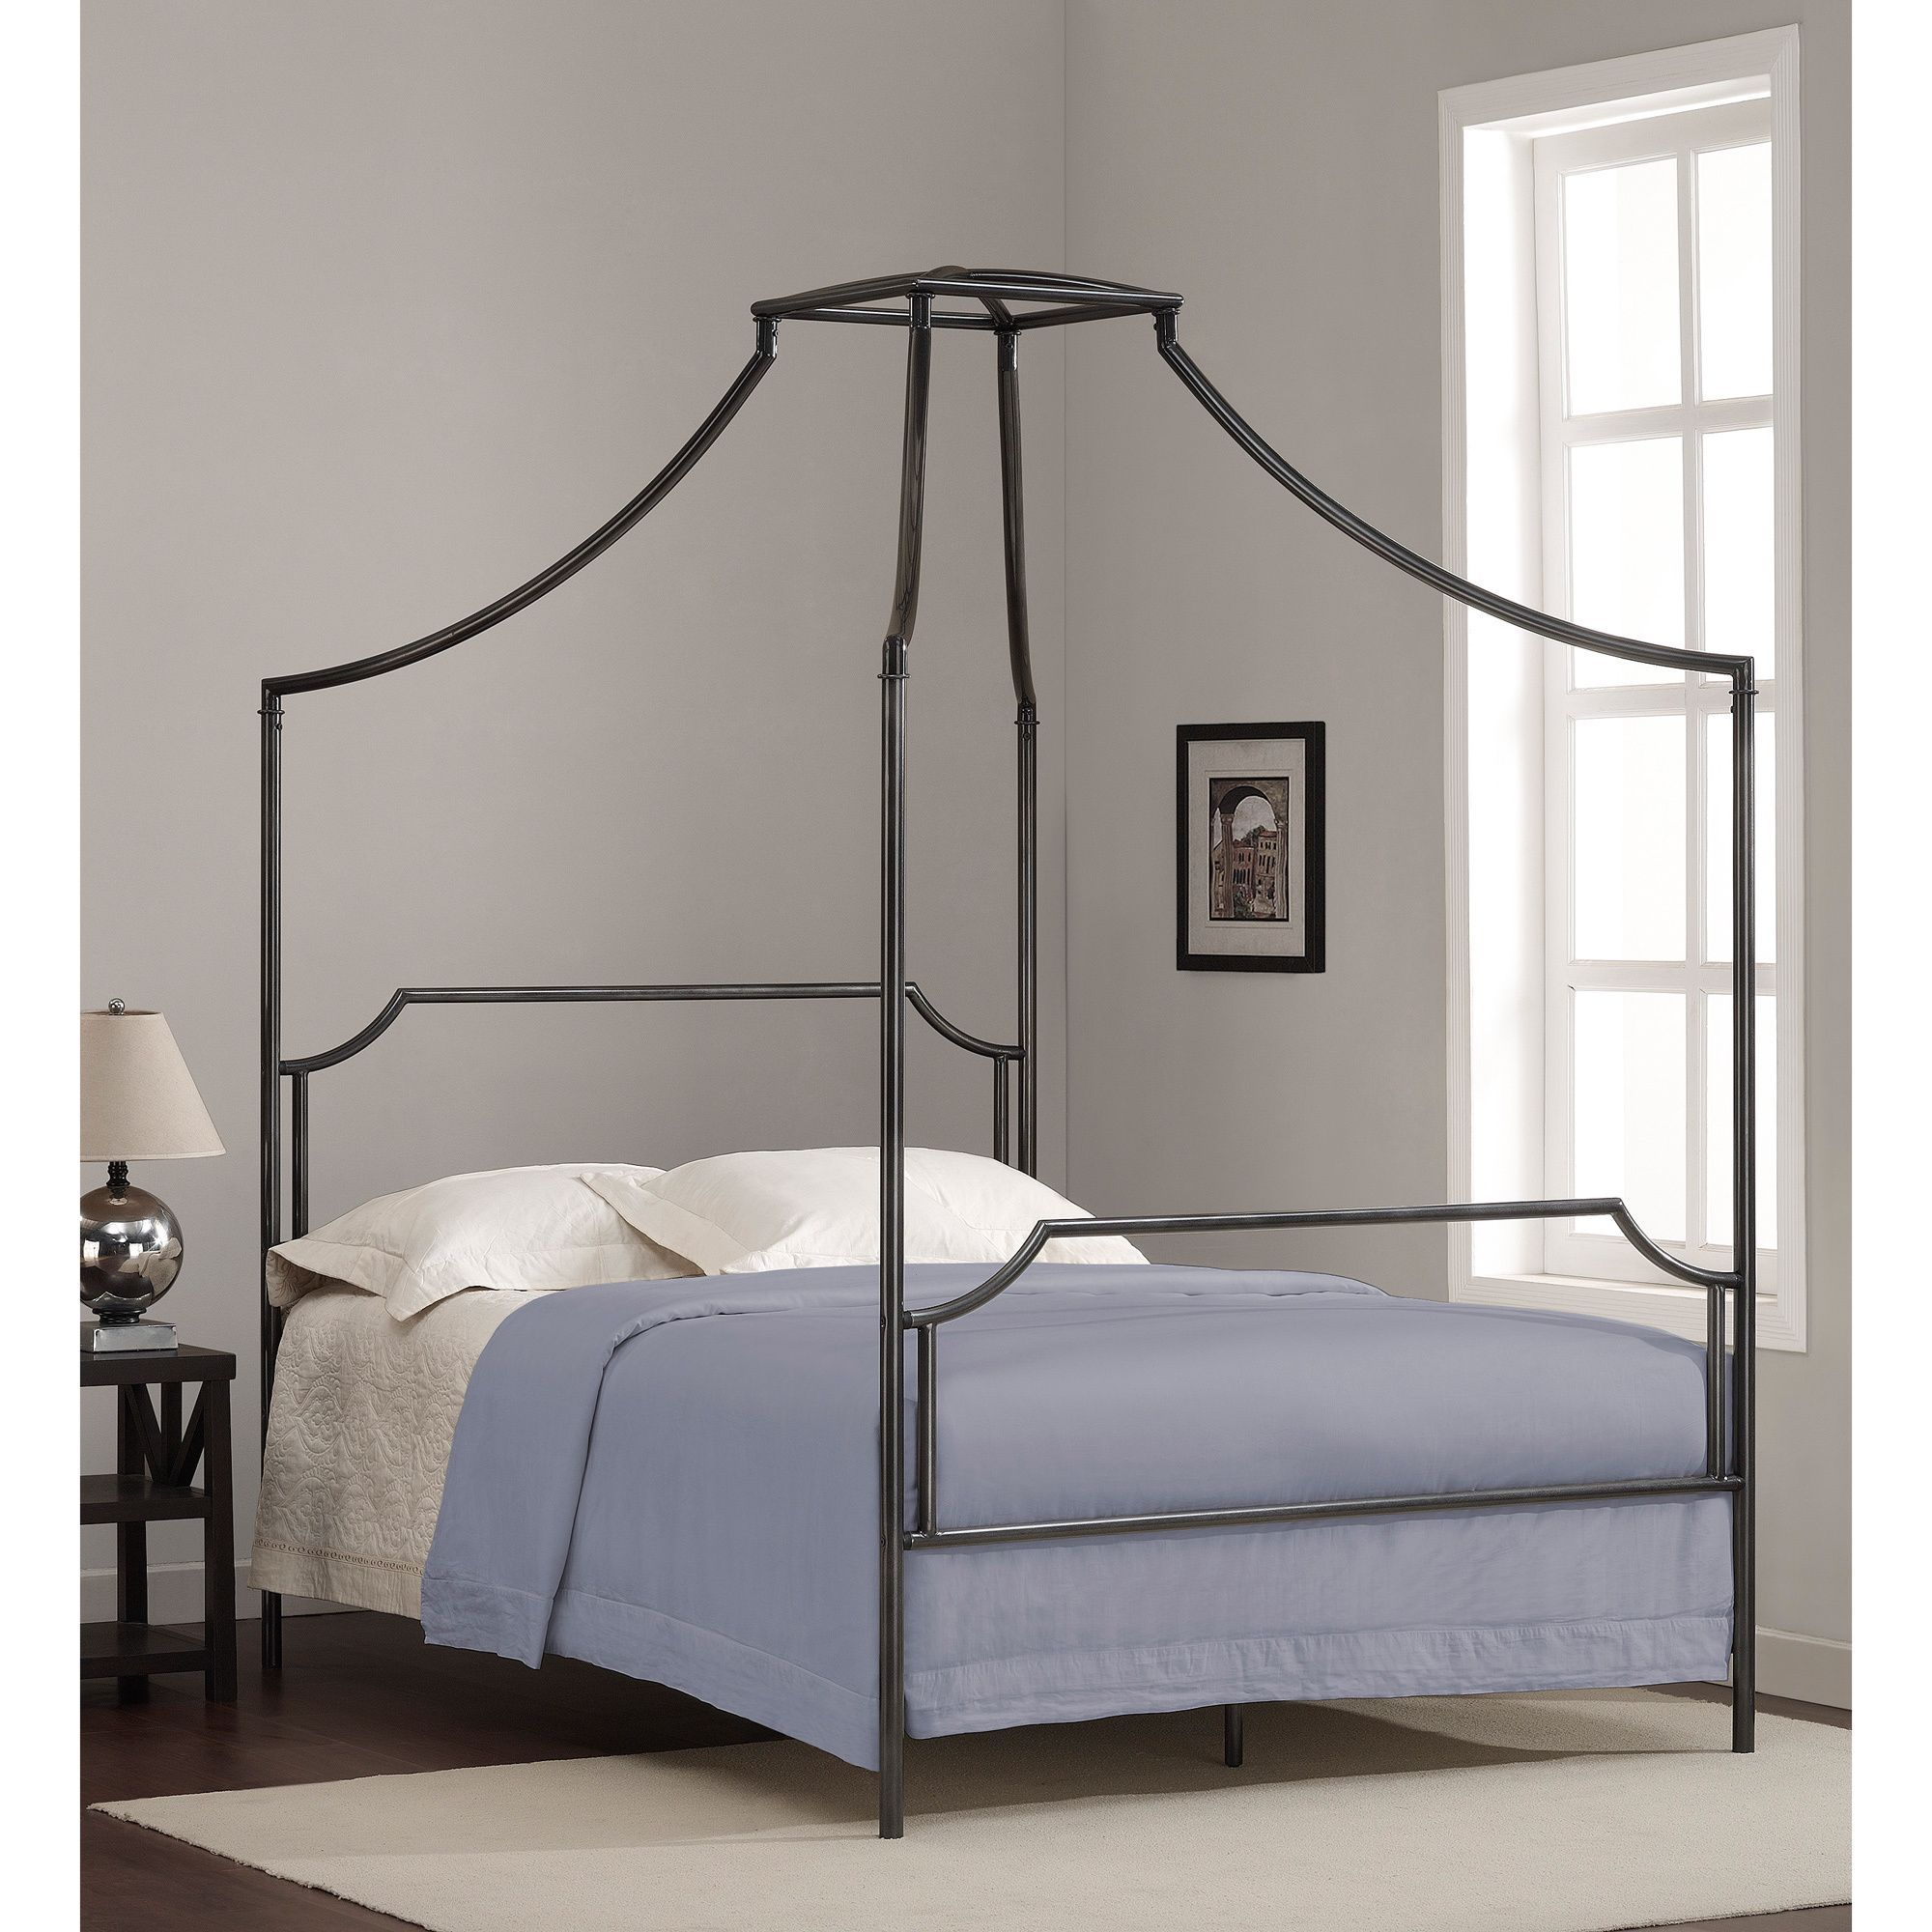 this beautiful full size bailey metal canopy bed will add style and whimsy to your - Iron Canopy Bed Frame